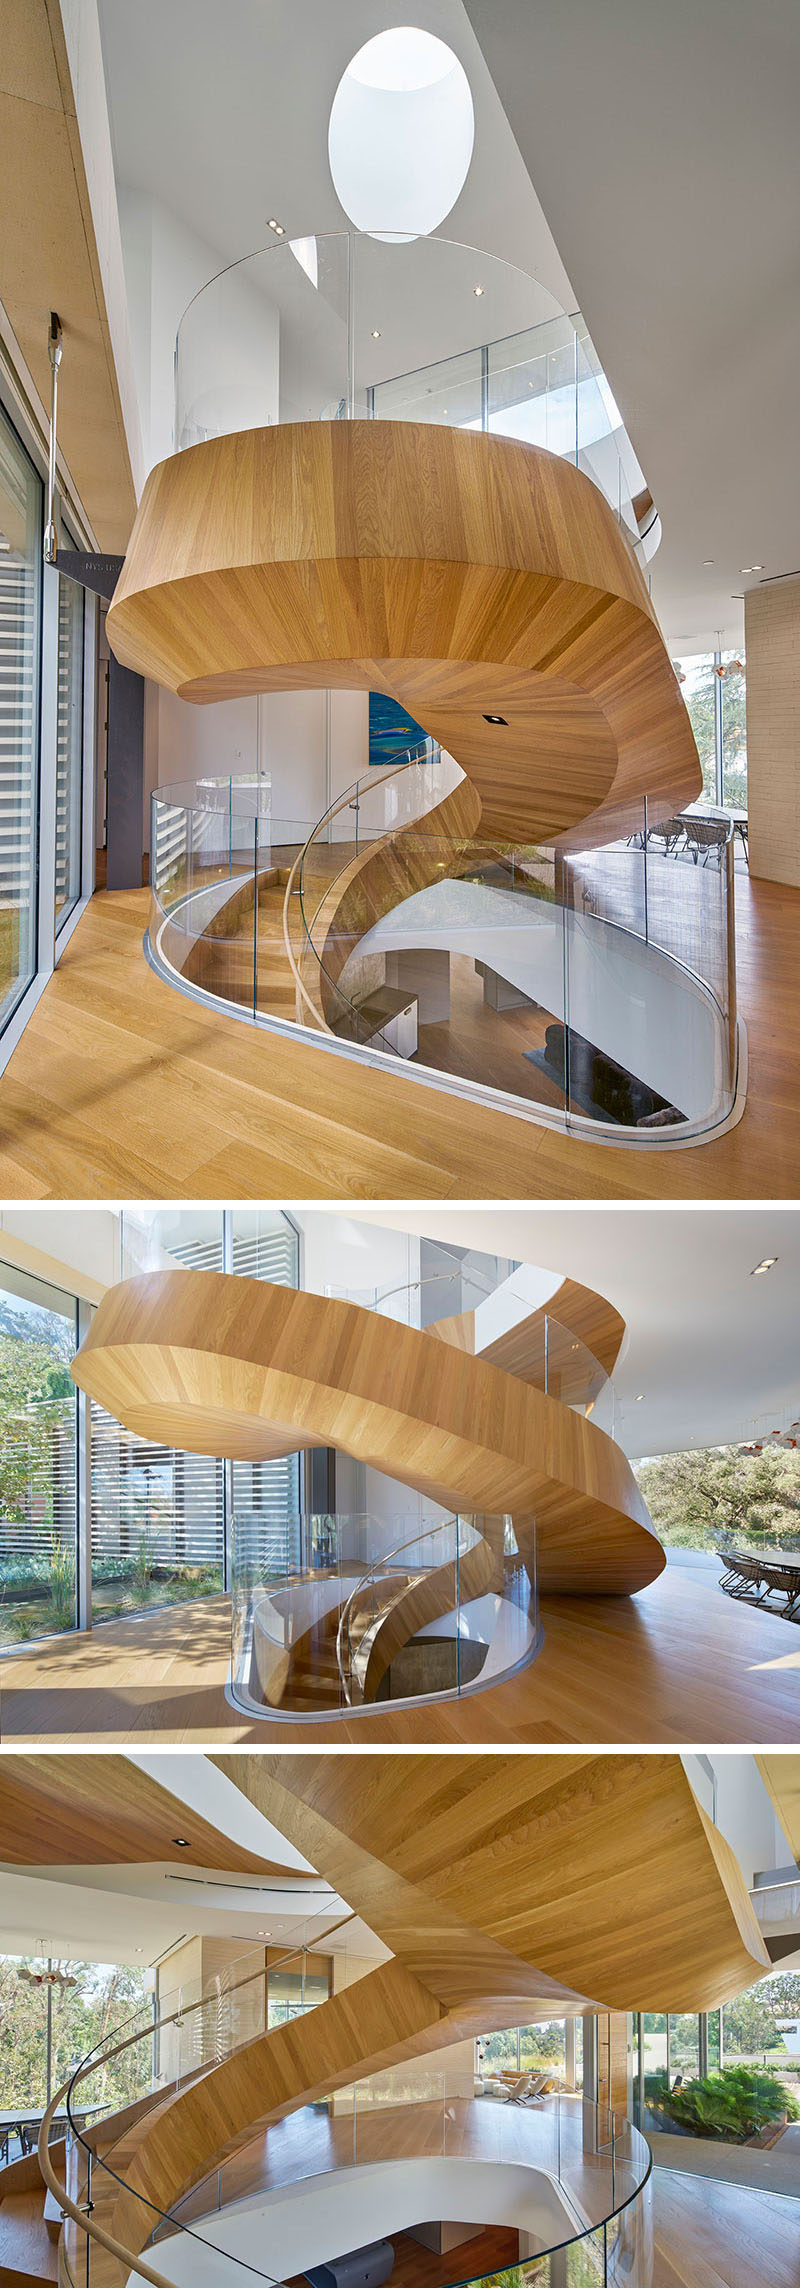 This large wood and spiral staircase not only connects various levels of the home but also divides the space and acts as a sculptural installation. #SpiralStairs #SpiralStaircase #ModernSpiralStairs #WoodSpiralStairs